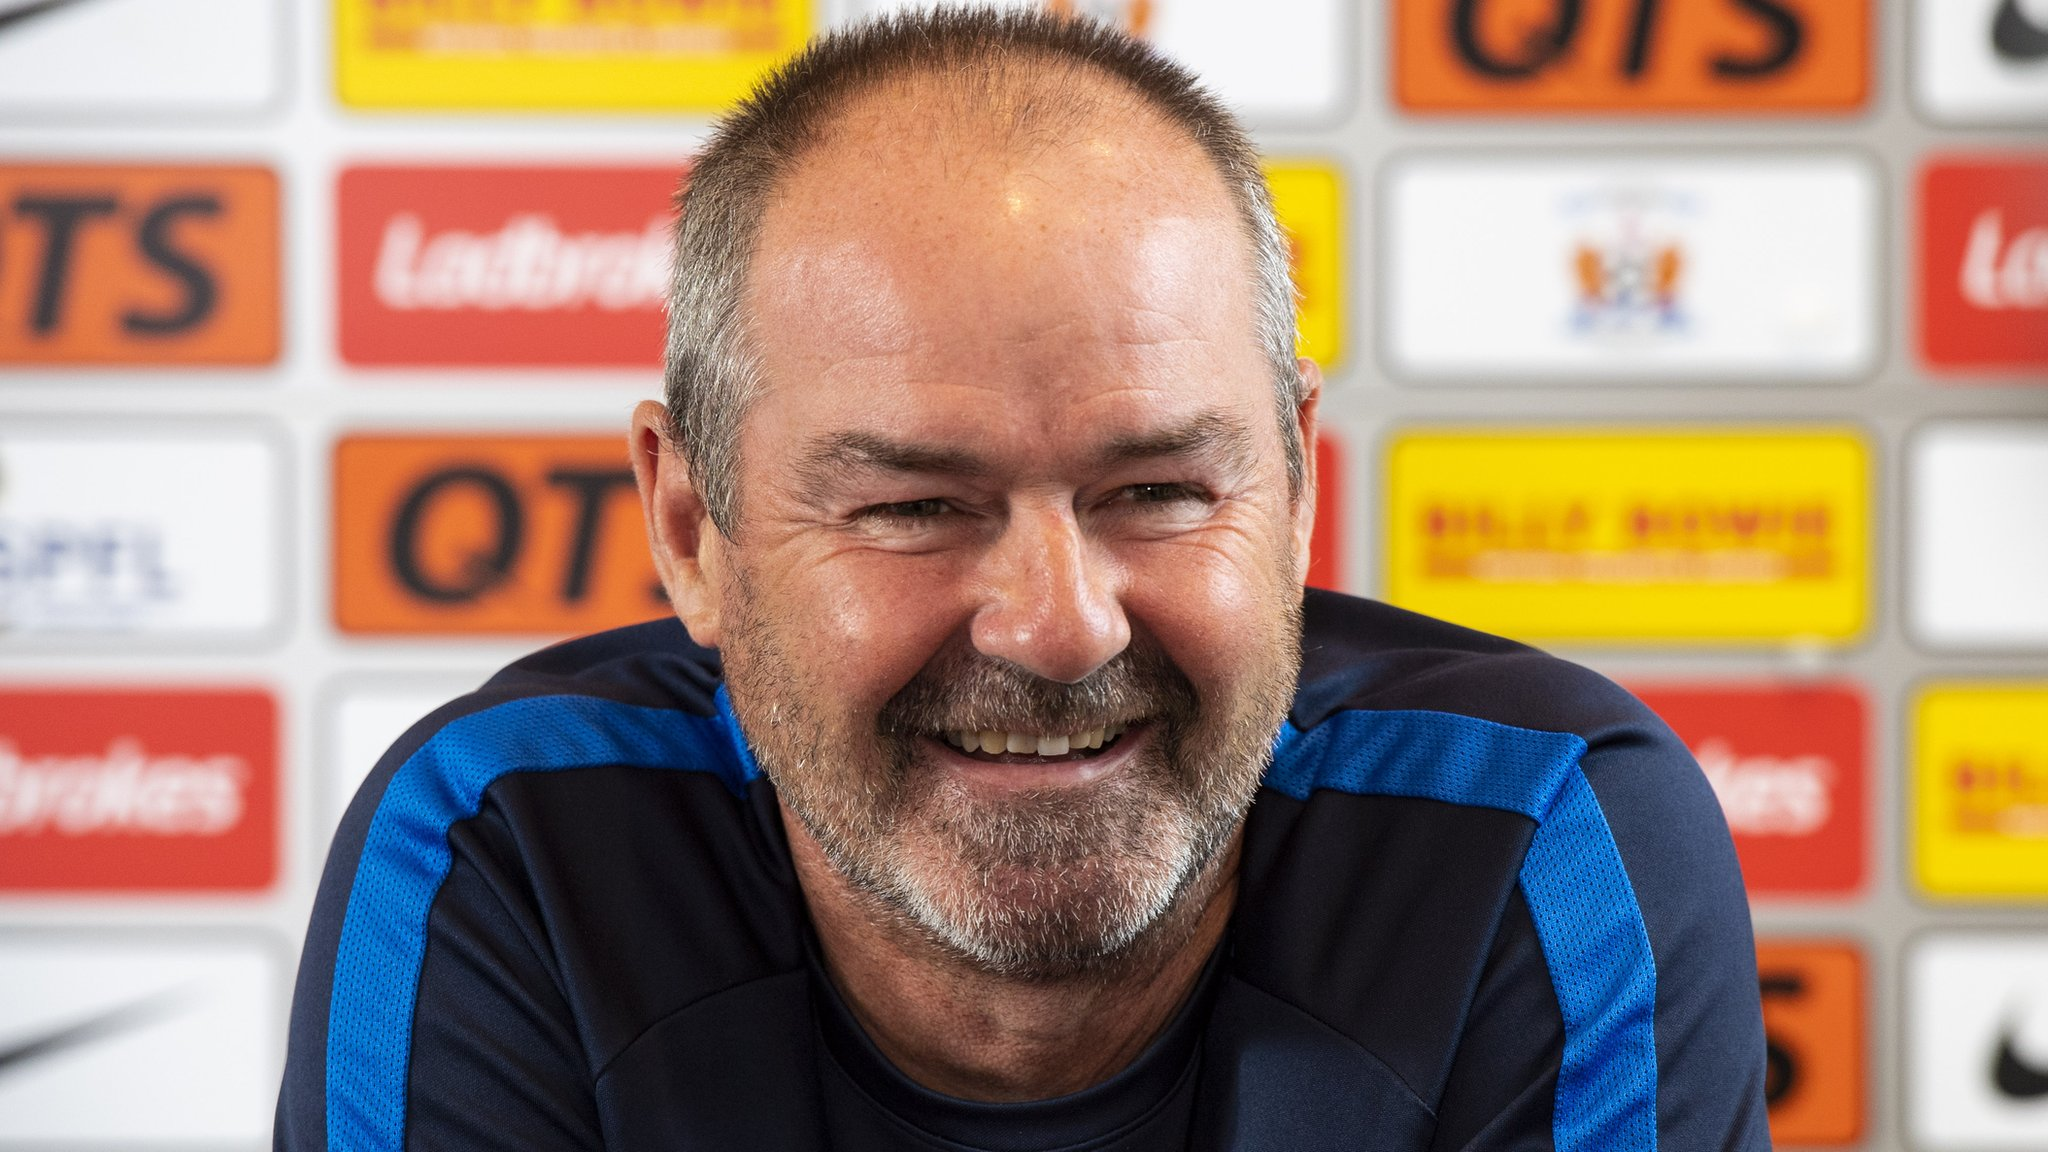 Kilmarnock: Steve Clarke counts on familiar faces and team spirit